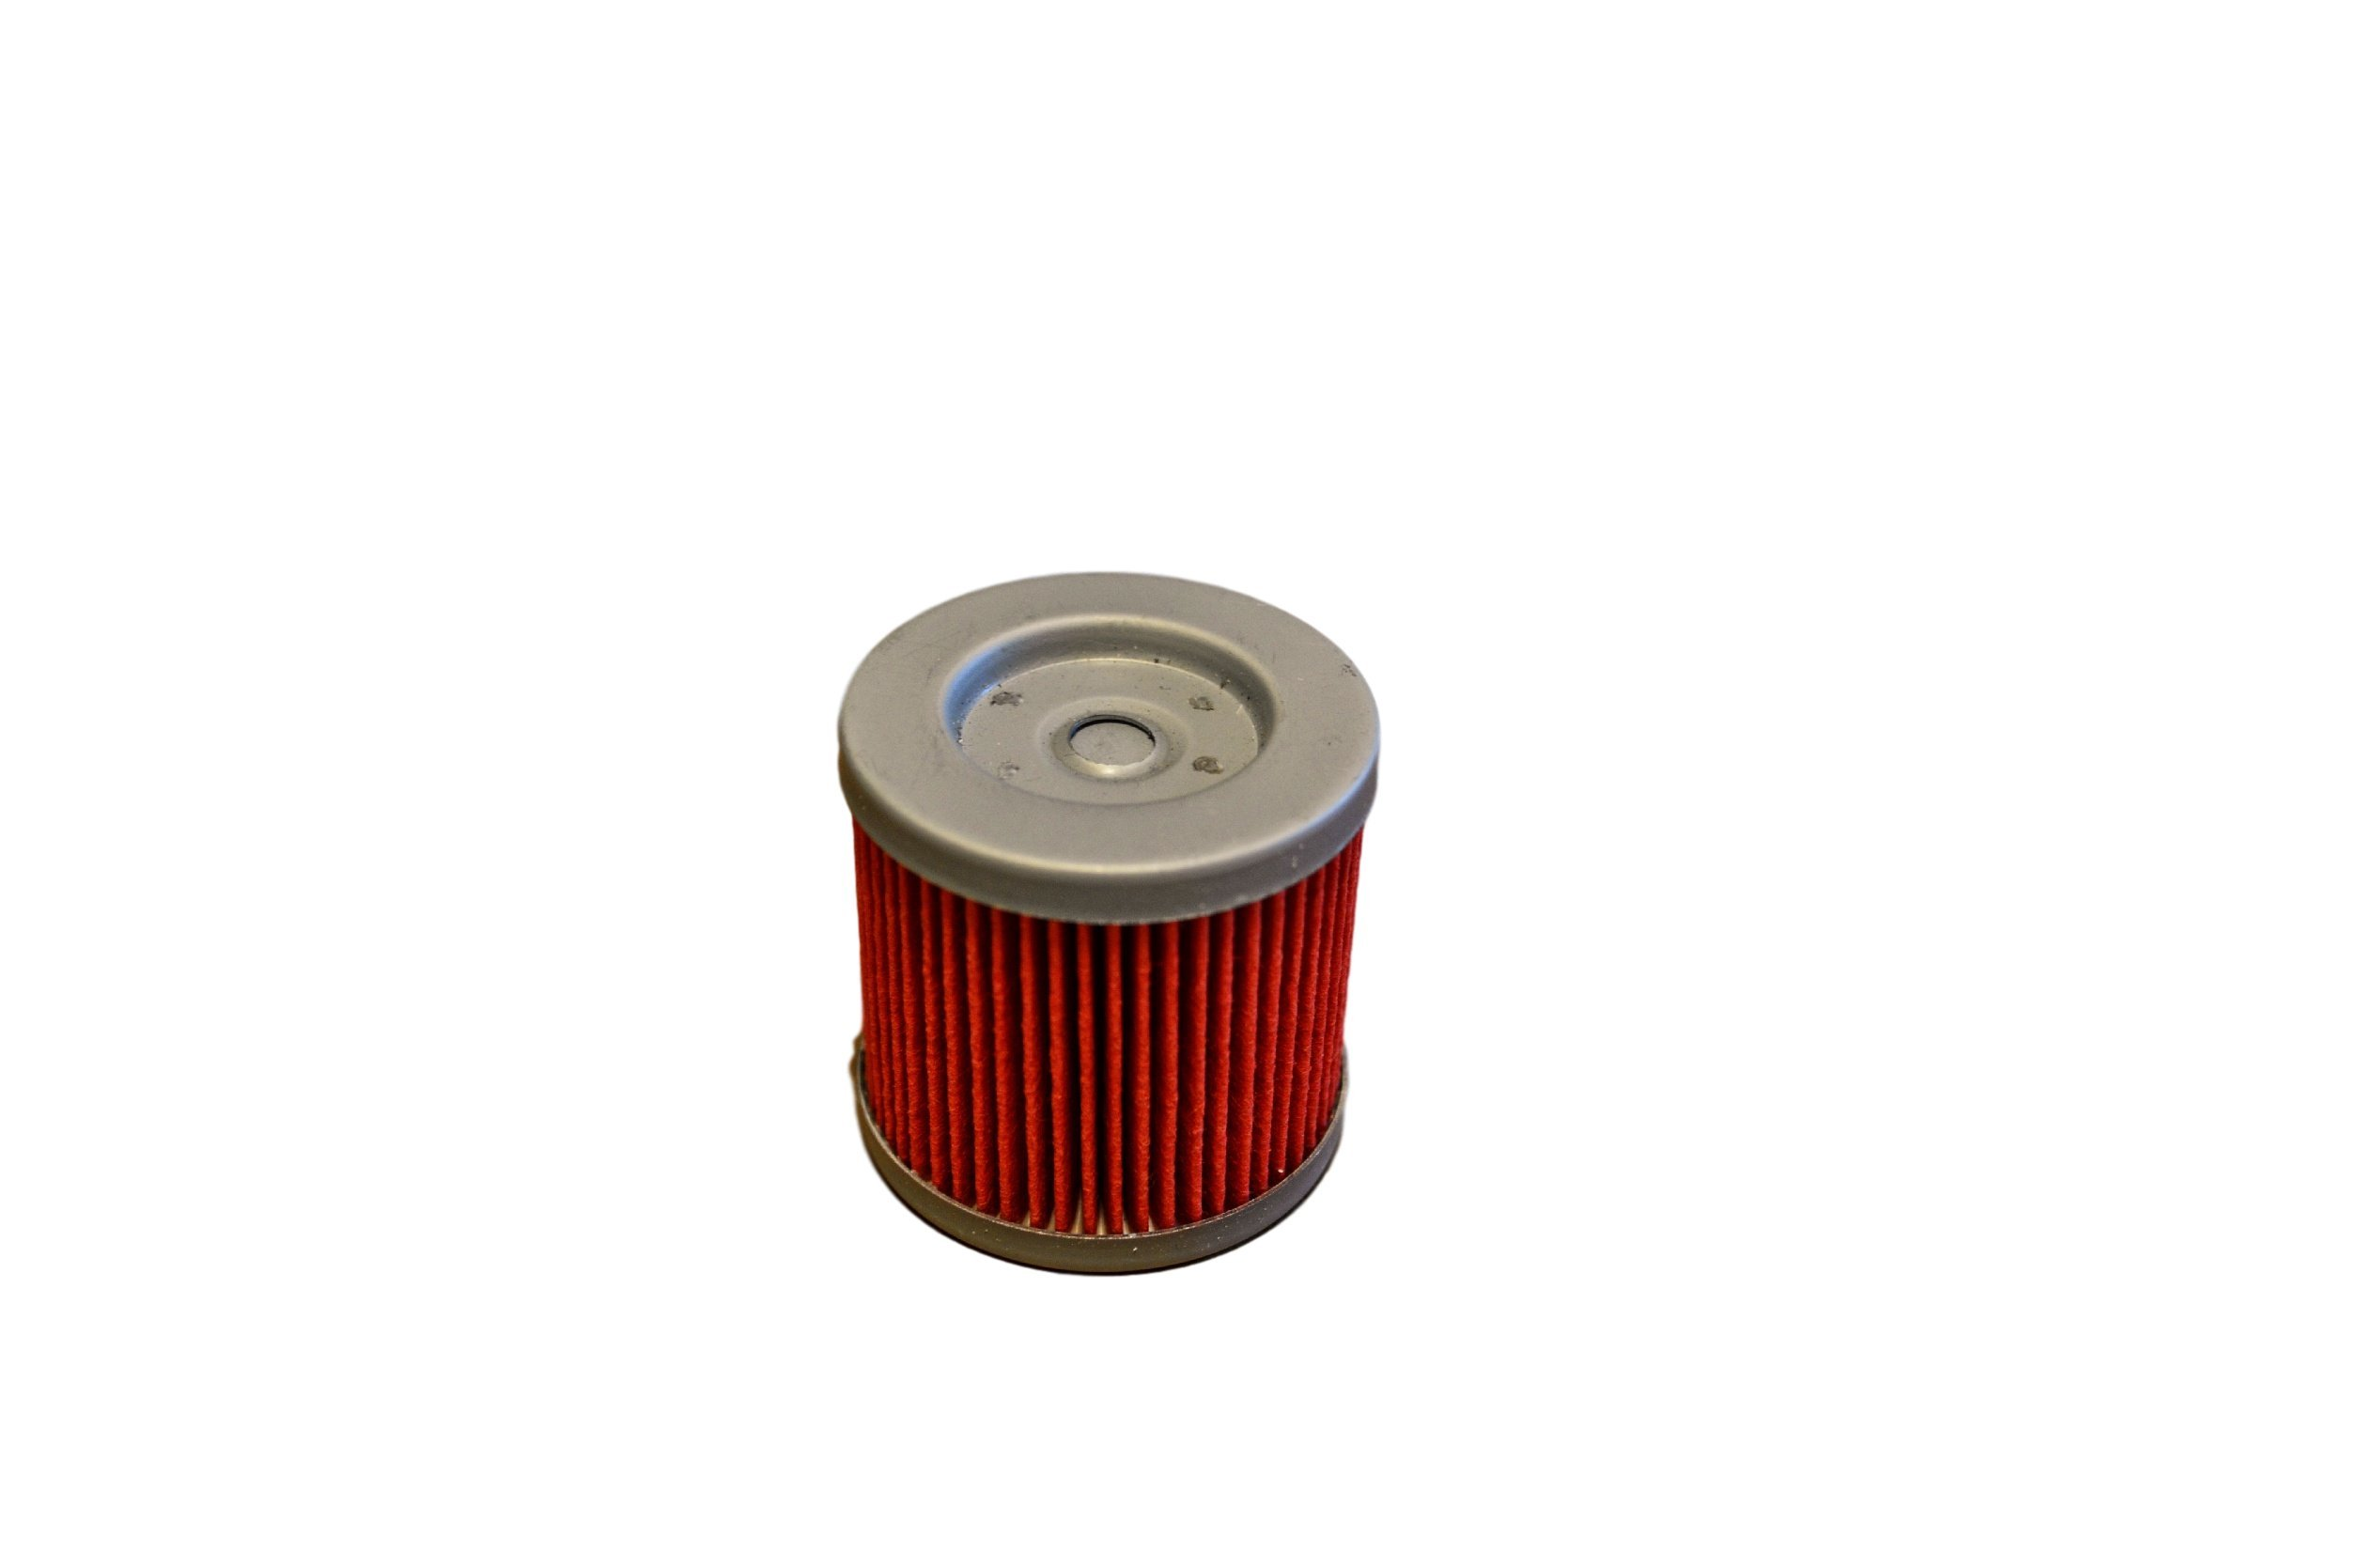 GOLDIGGER After Market HF139 & KN-139 Replacement Oil Filter Powersports/Motorcycle/Dirt Bike/ATV (3 Pack) by GOLDIGGER (Image #1)